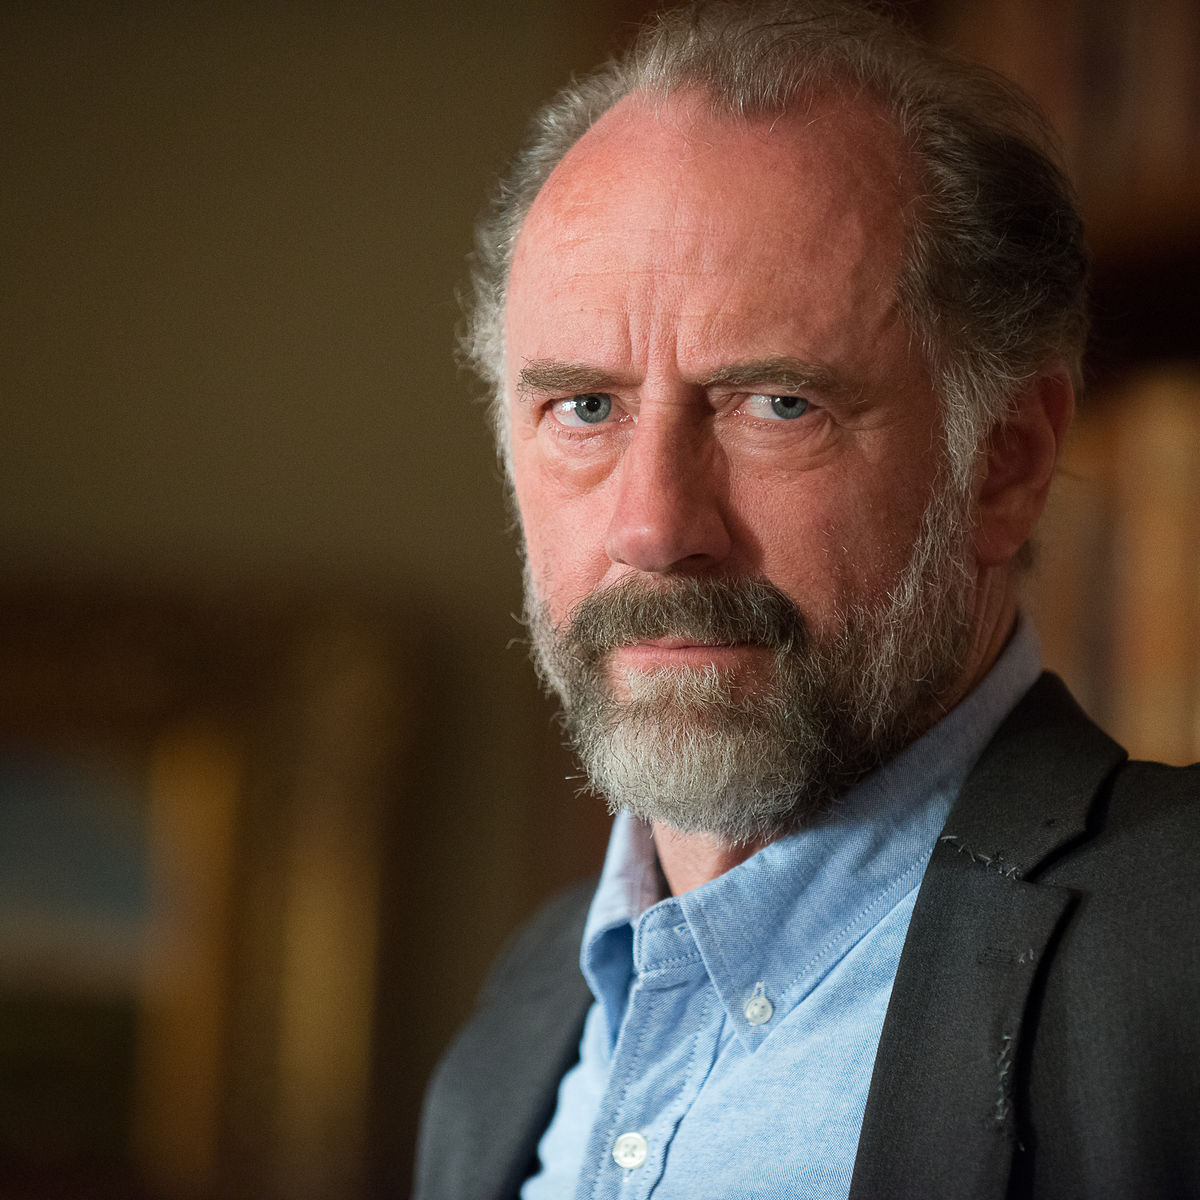 The Walking Dead - Xander Berkeley as Gregory